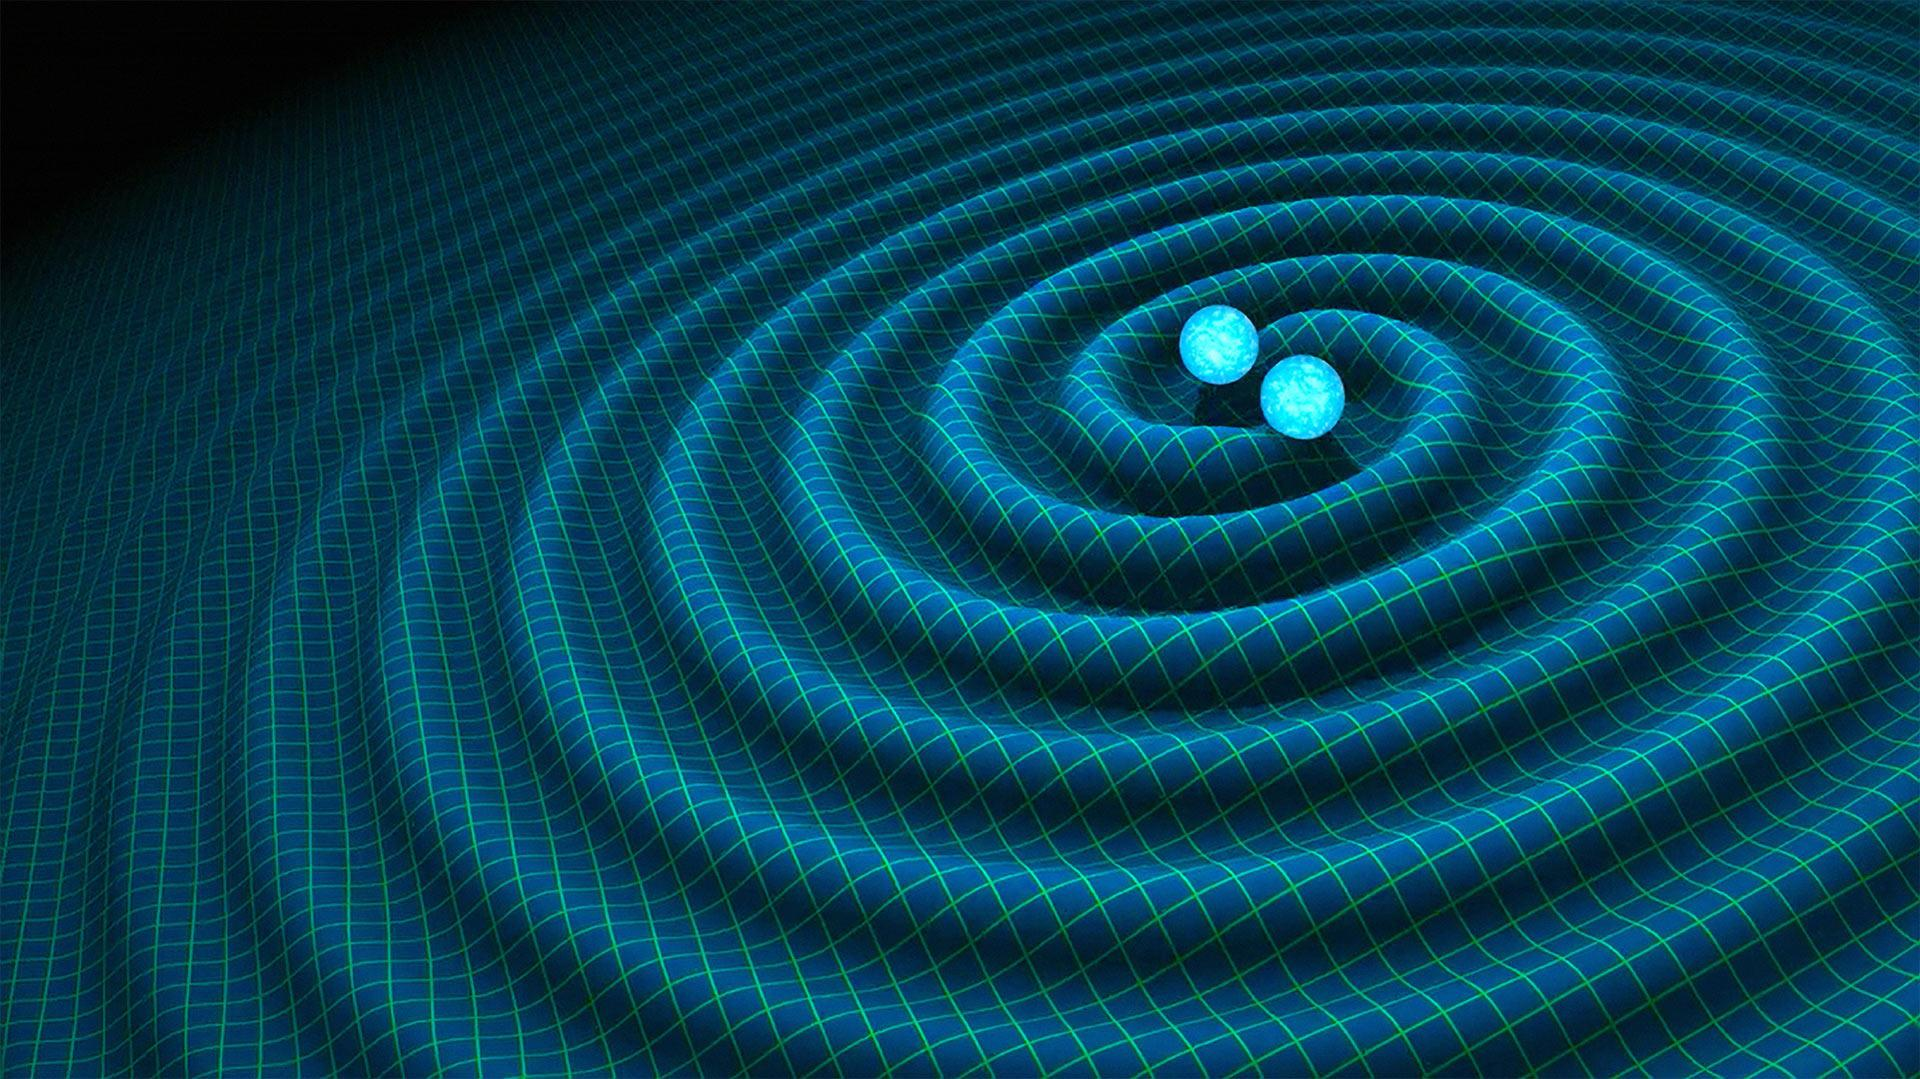 We've finally found gravitational waves, so can we time travel?